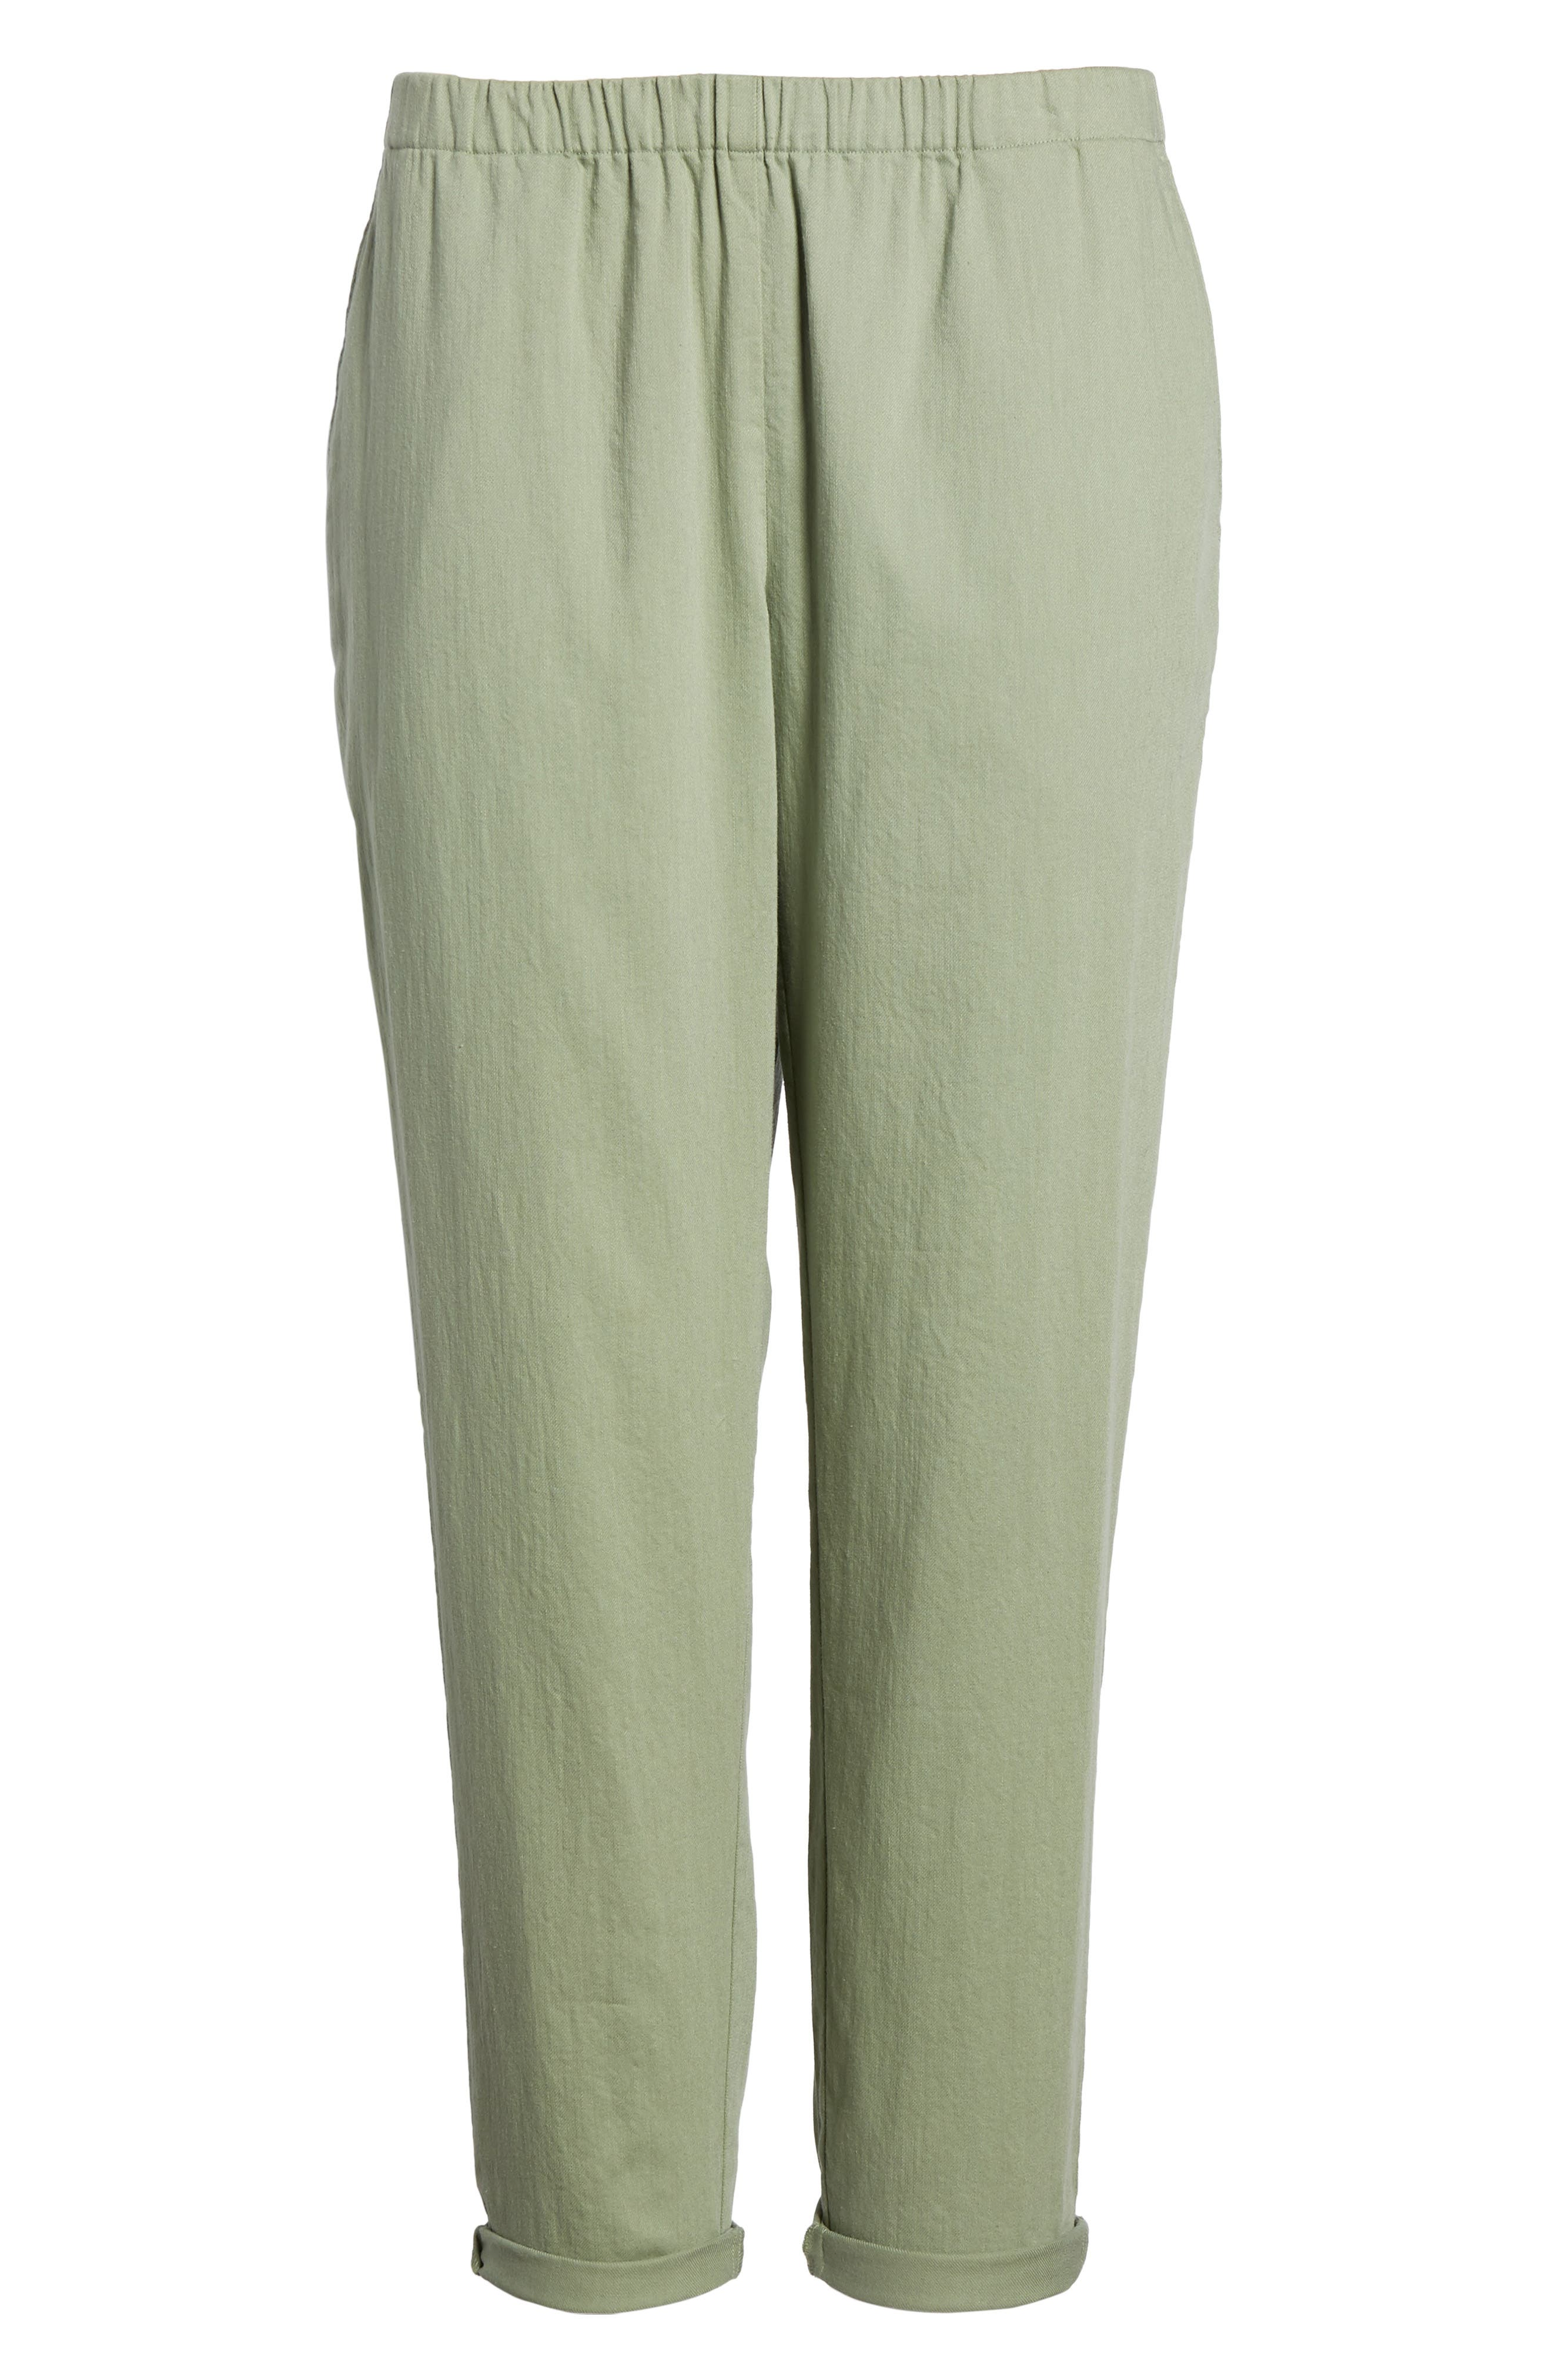 Organic Cotton Tapered Ankle Pants,                             Main thumbnail 1, color,                             Glen